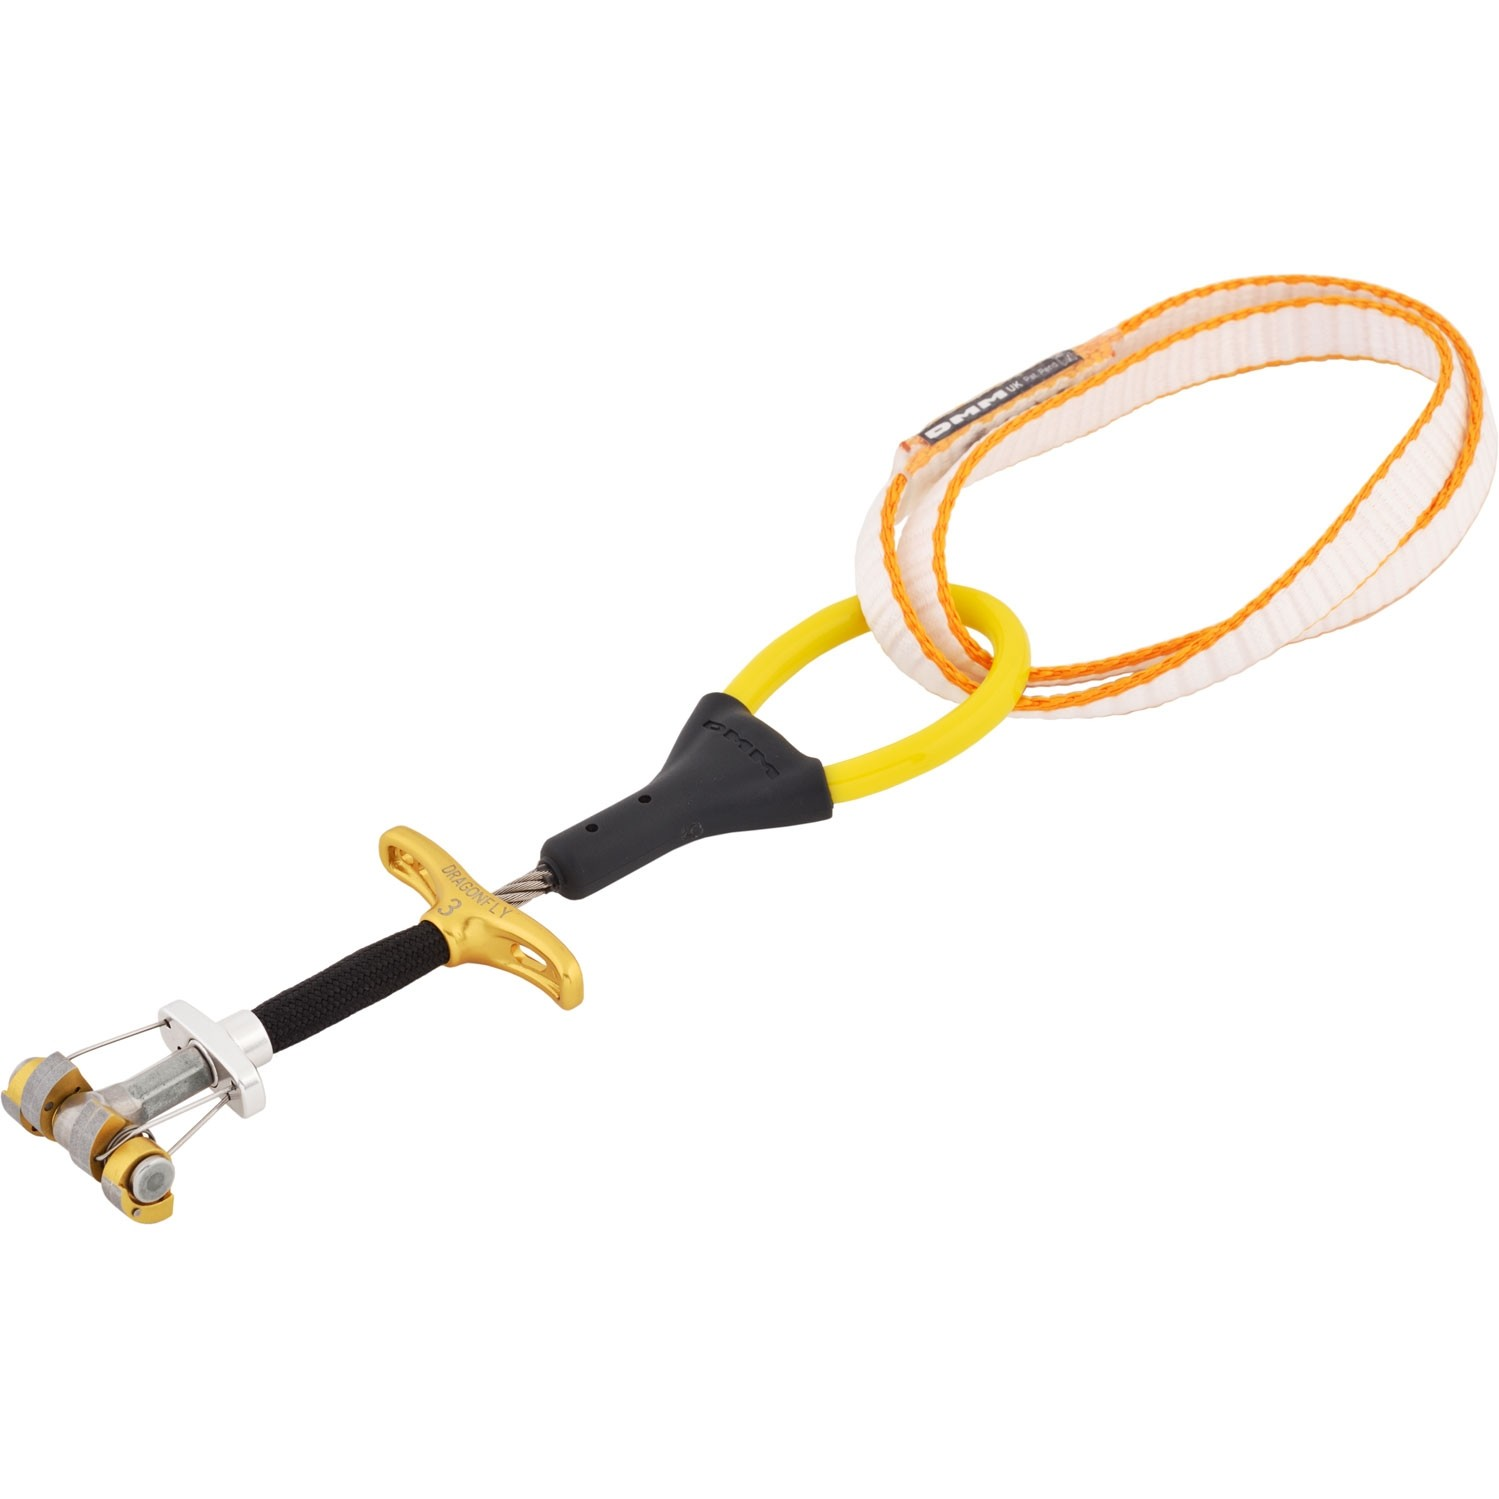 DMM Dragonfly Micro Cam - Size 3 - Gold